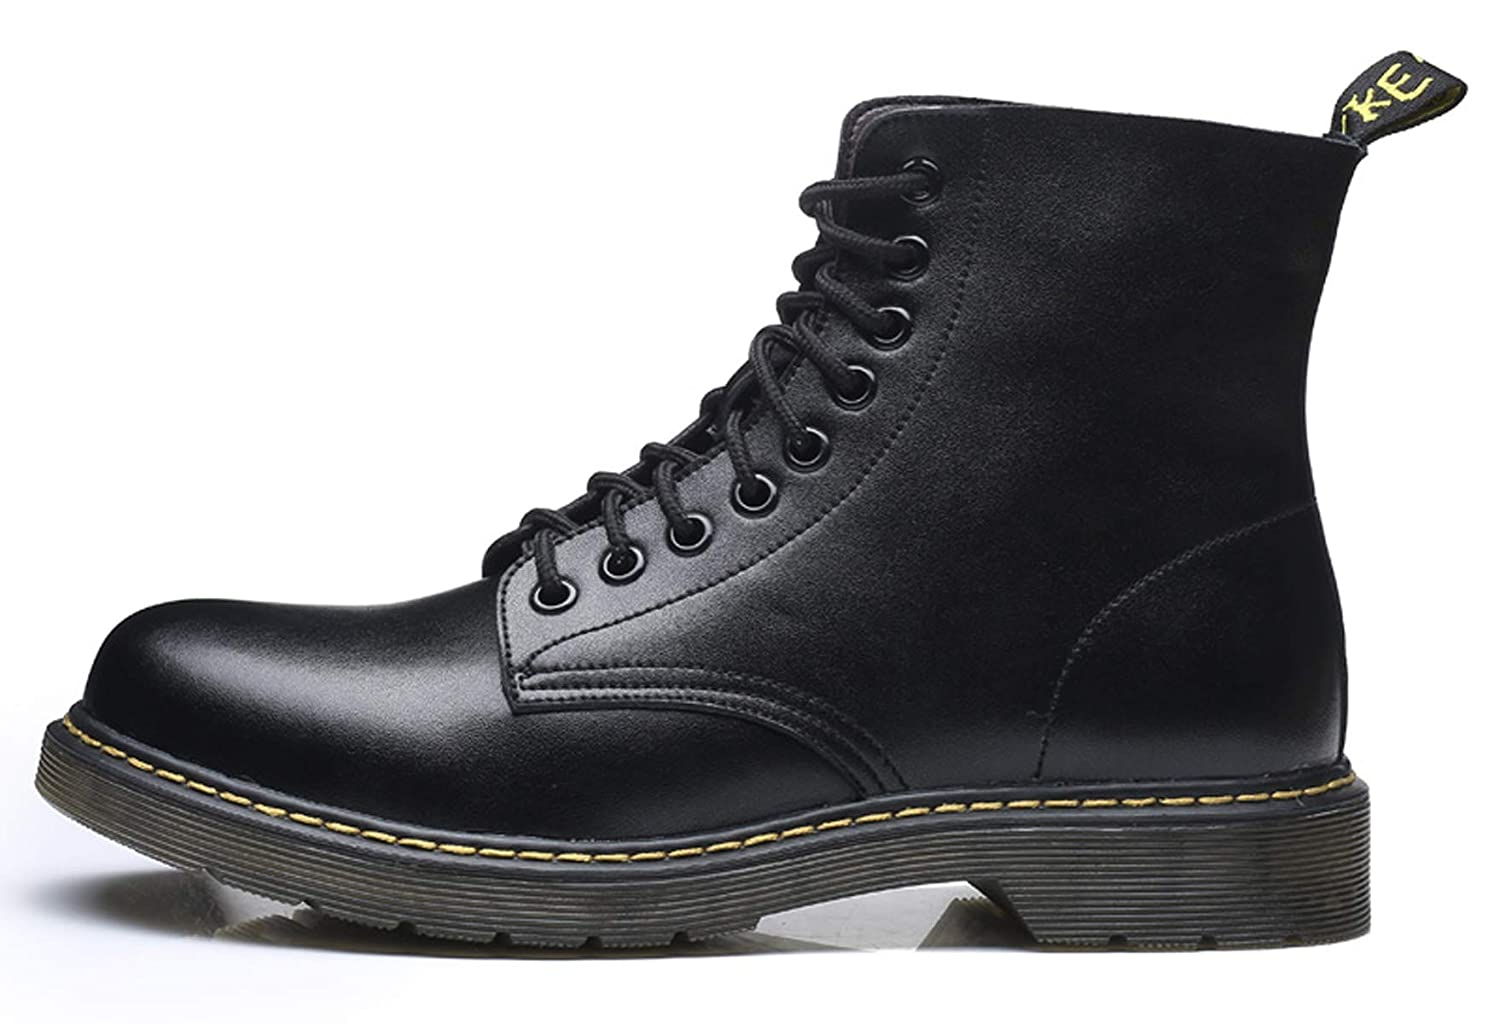 Santimon Mens Ankle Boots Snow Lace up Chukka Combat Boot Leather Casual Fashion Waterproof Outdoor Winter Shoes Bottes Neige